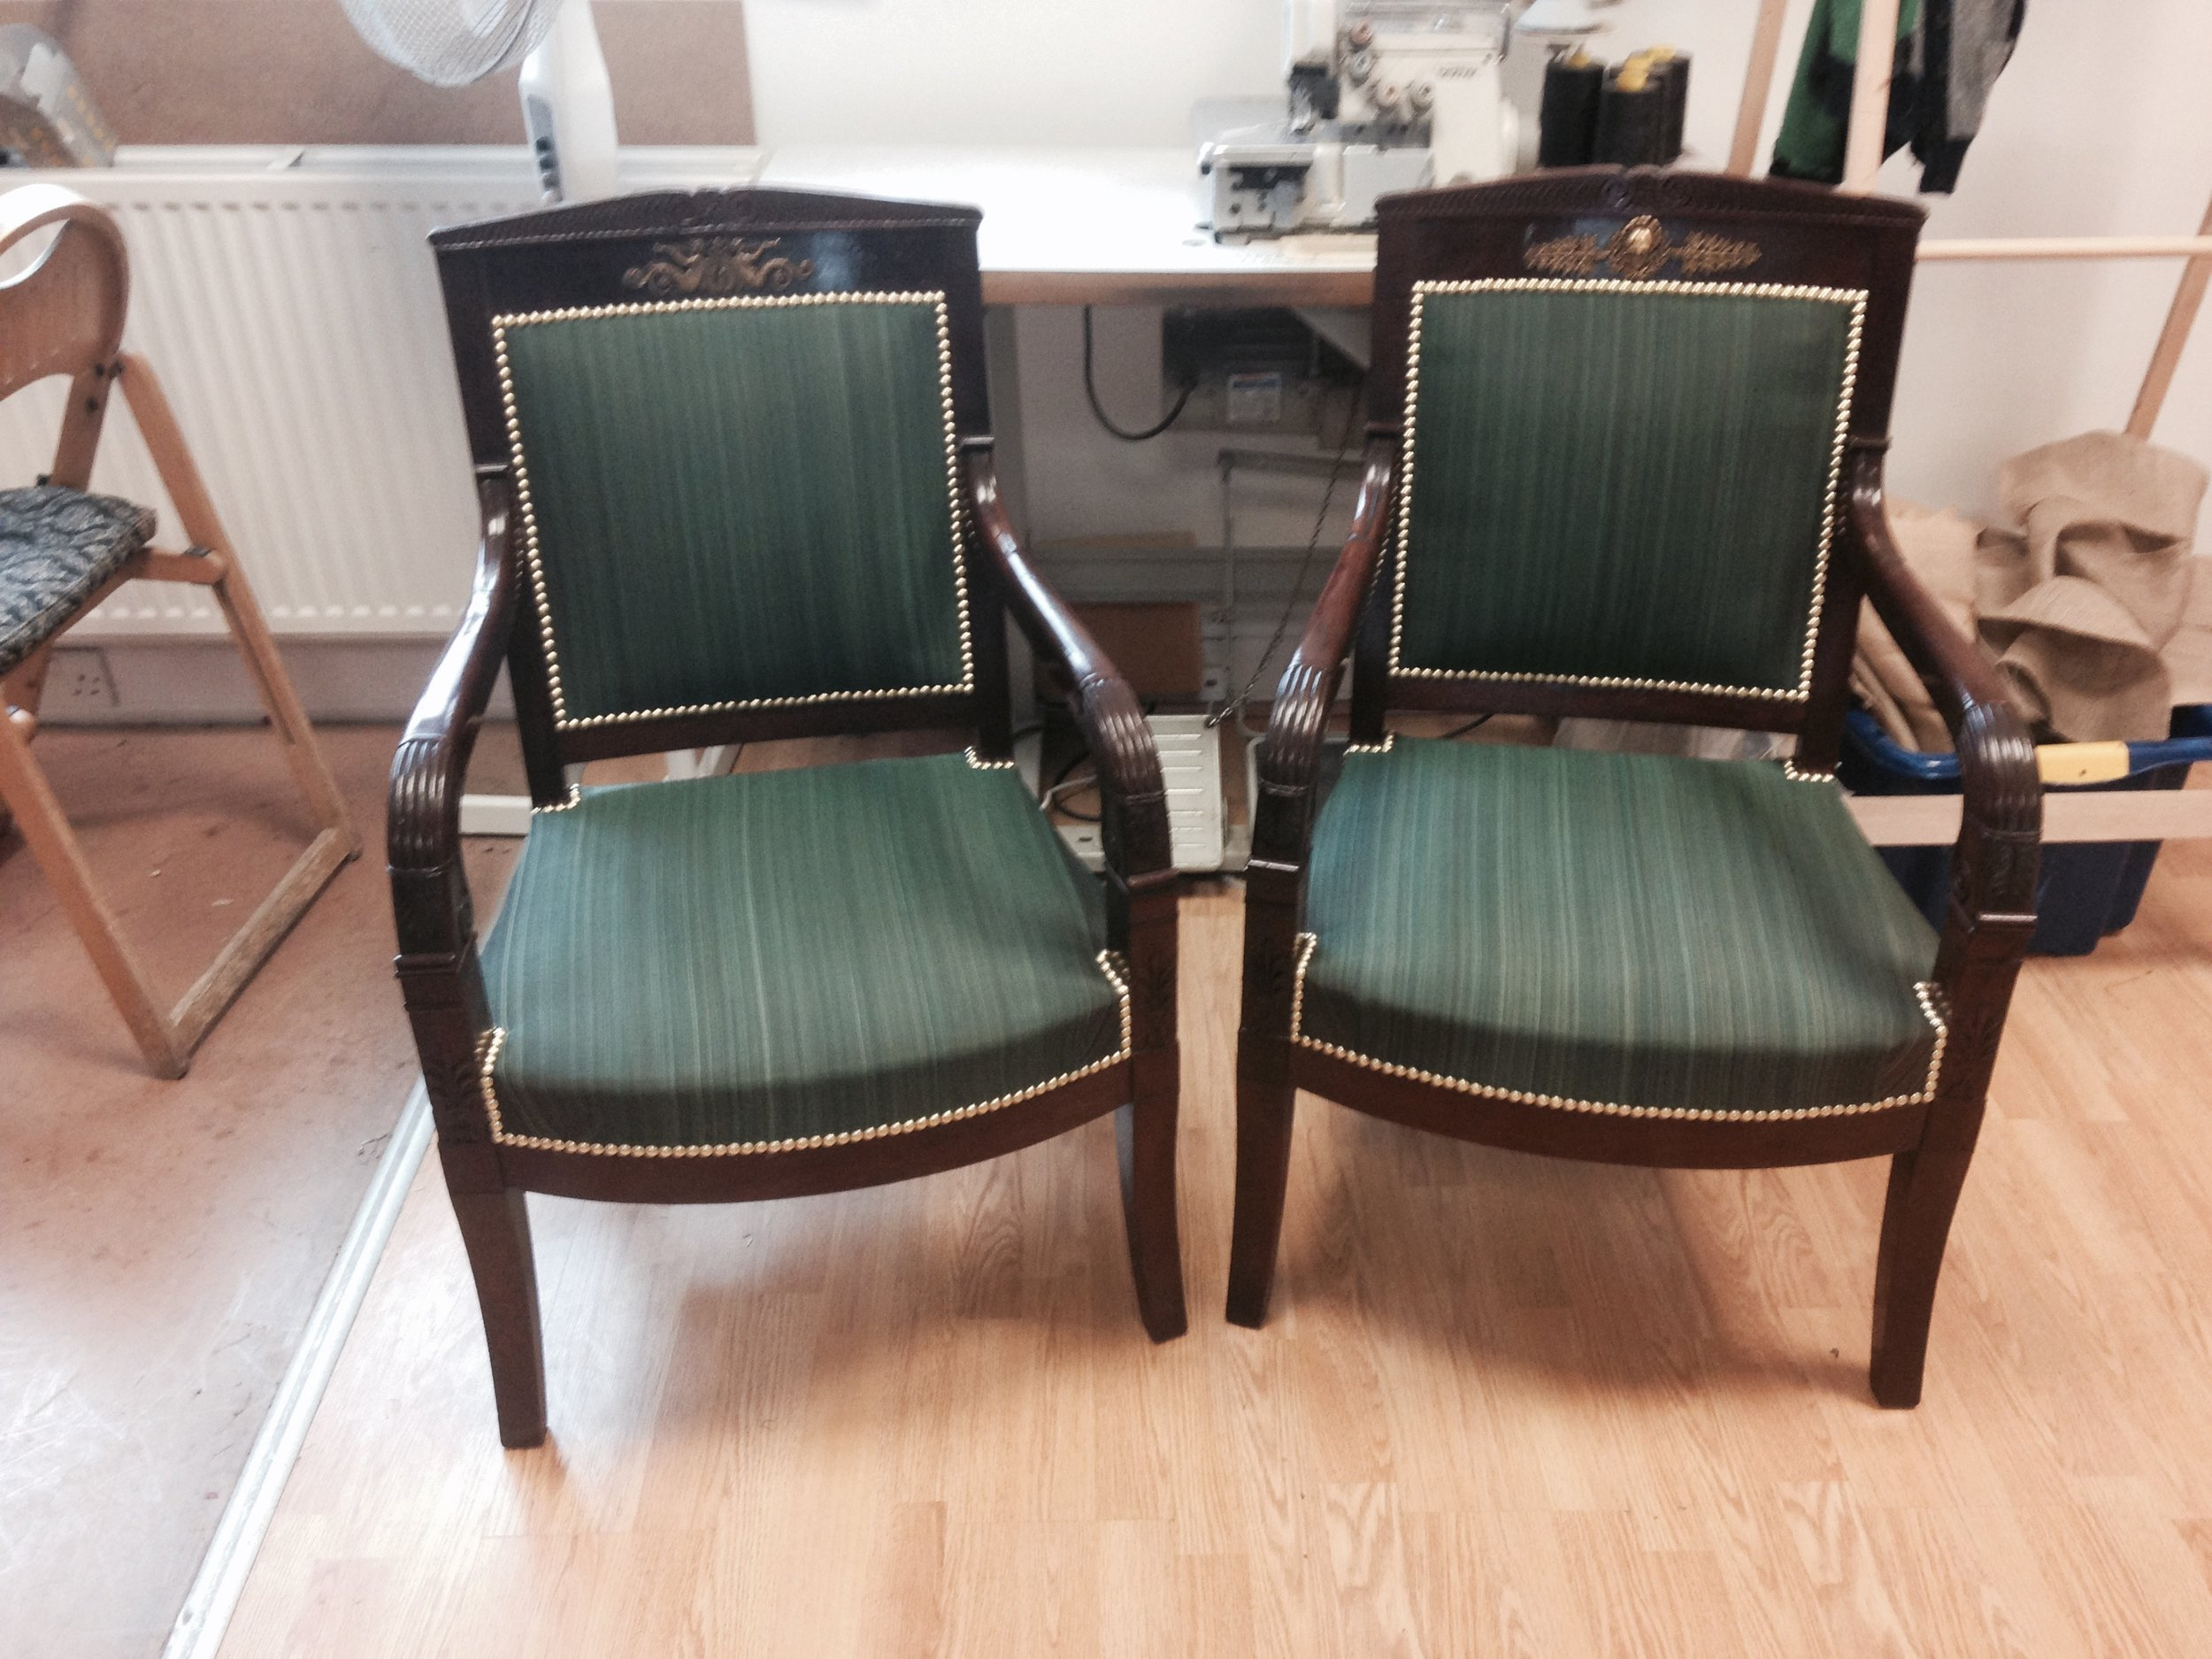 Regency style chairs in horsehair fabric. Edge Upholstery.